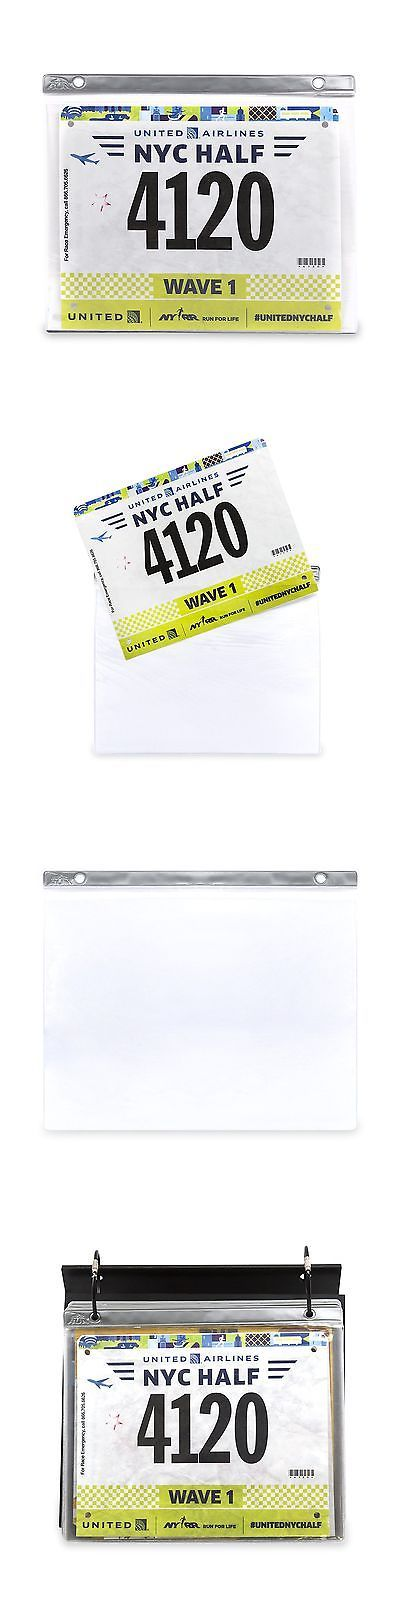 Other Fitness Clothing 158920: Bibfolio Race Bib Display And Protector Sheets | Designed By Gone For A Run |... -> BUY IT NOW ONLY: $36.8 on eBay!